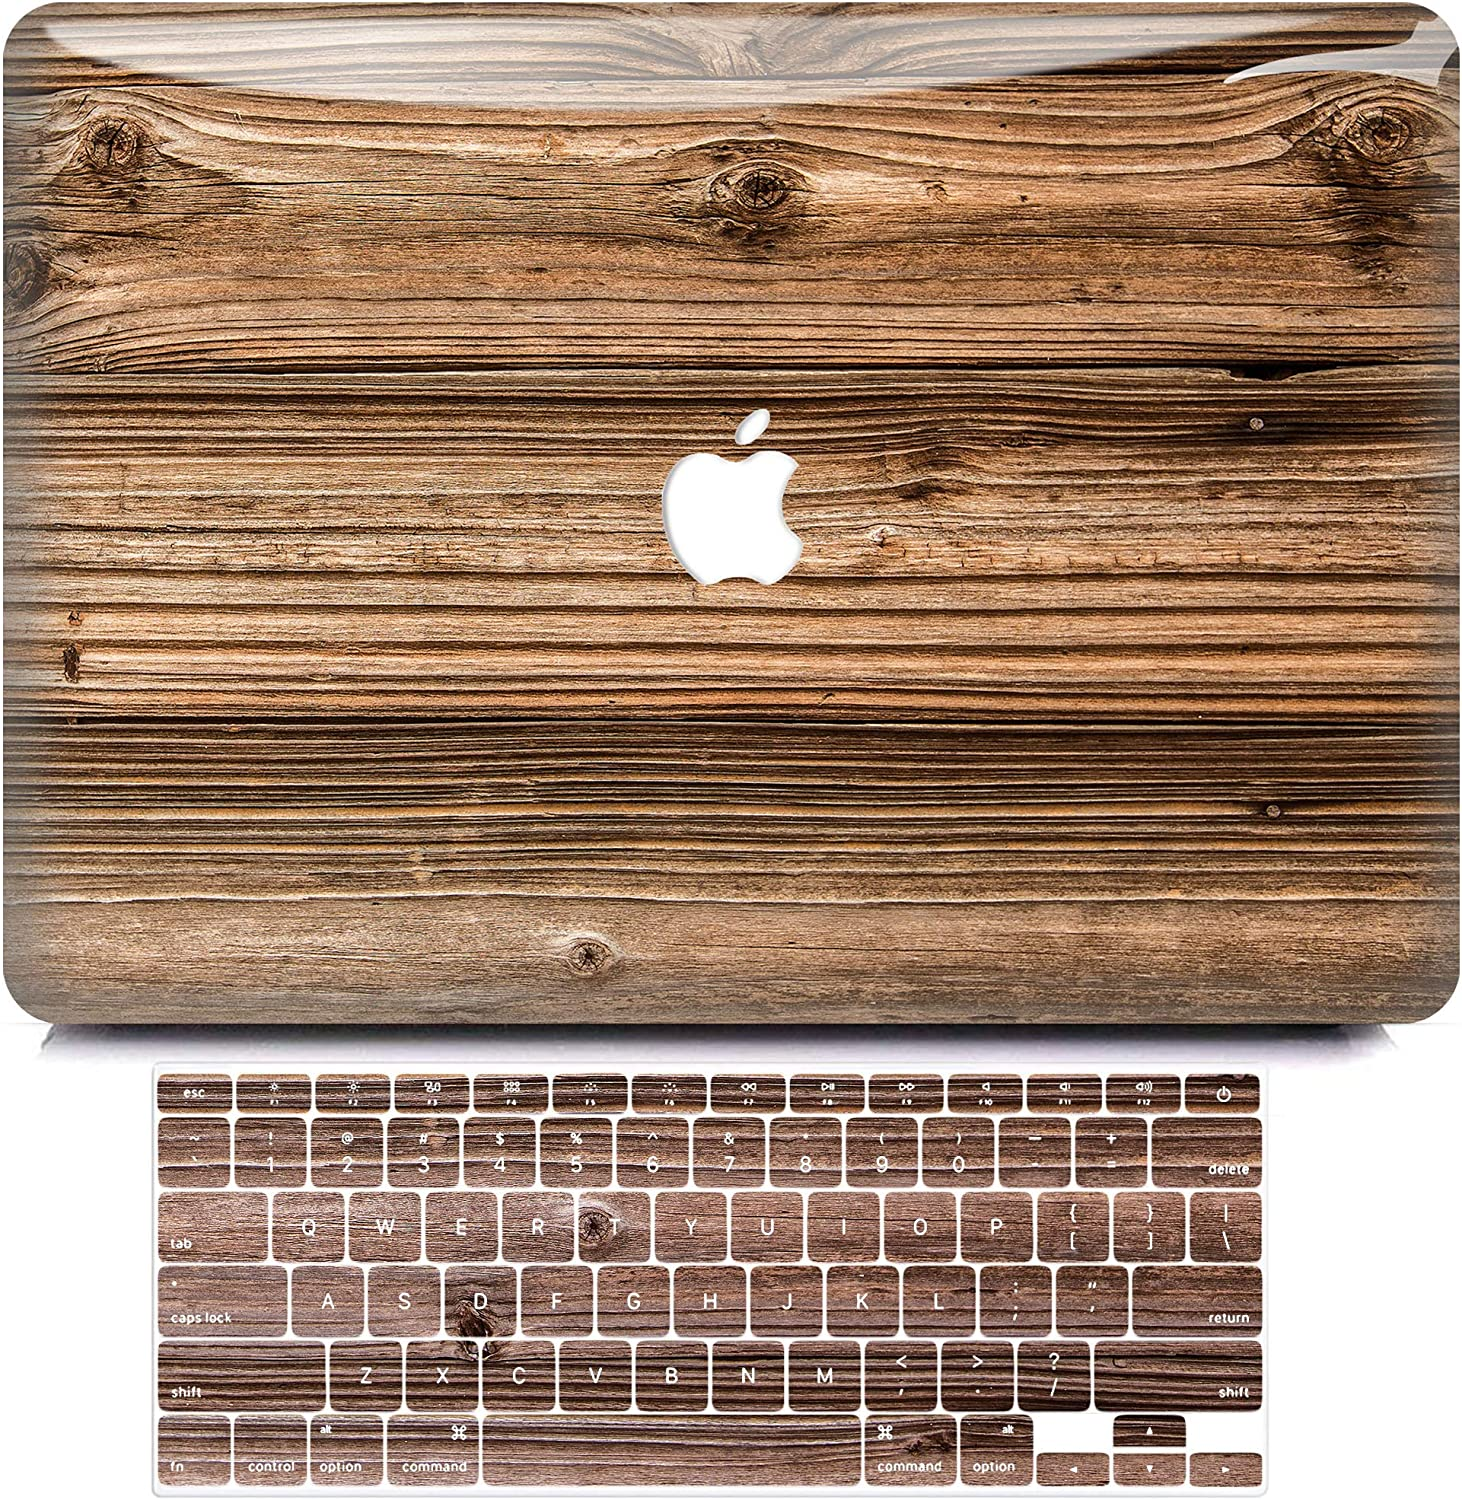 MacBook Air 13 Inch Case 2010-2017 Release Model A1466 A1369, BELKA 3D Slim Smooth Scratch Resistant Snap on Plastic Hard Case with Keyboard Cover for Apple Mac Air 13.3 inch, Walnut